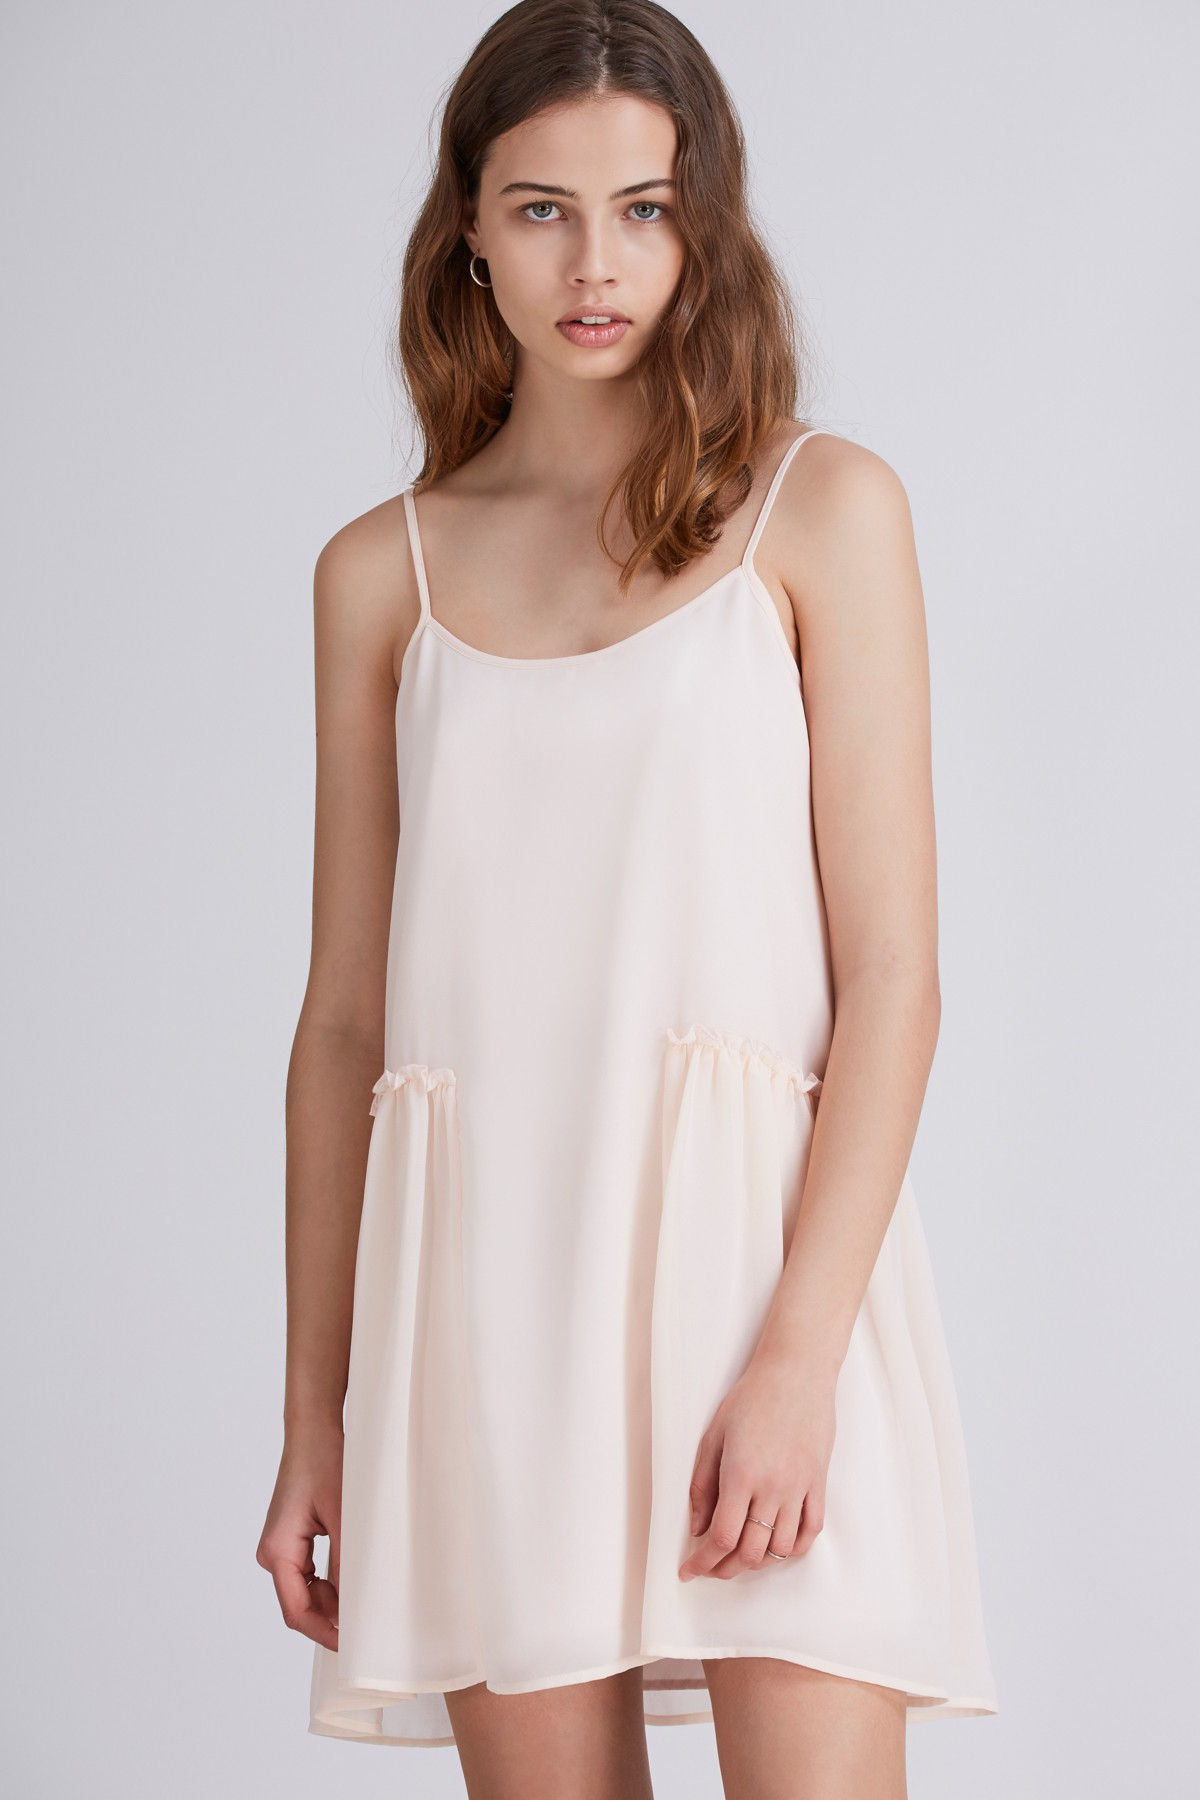 The Fifth Label Voyage Dress.